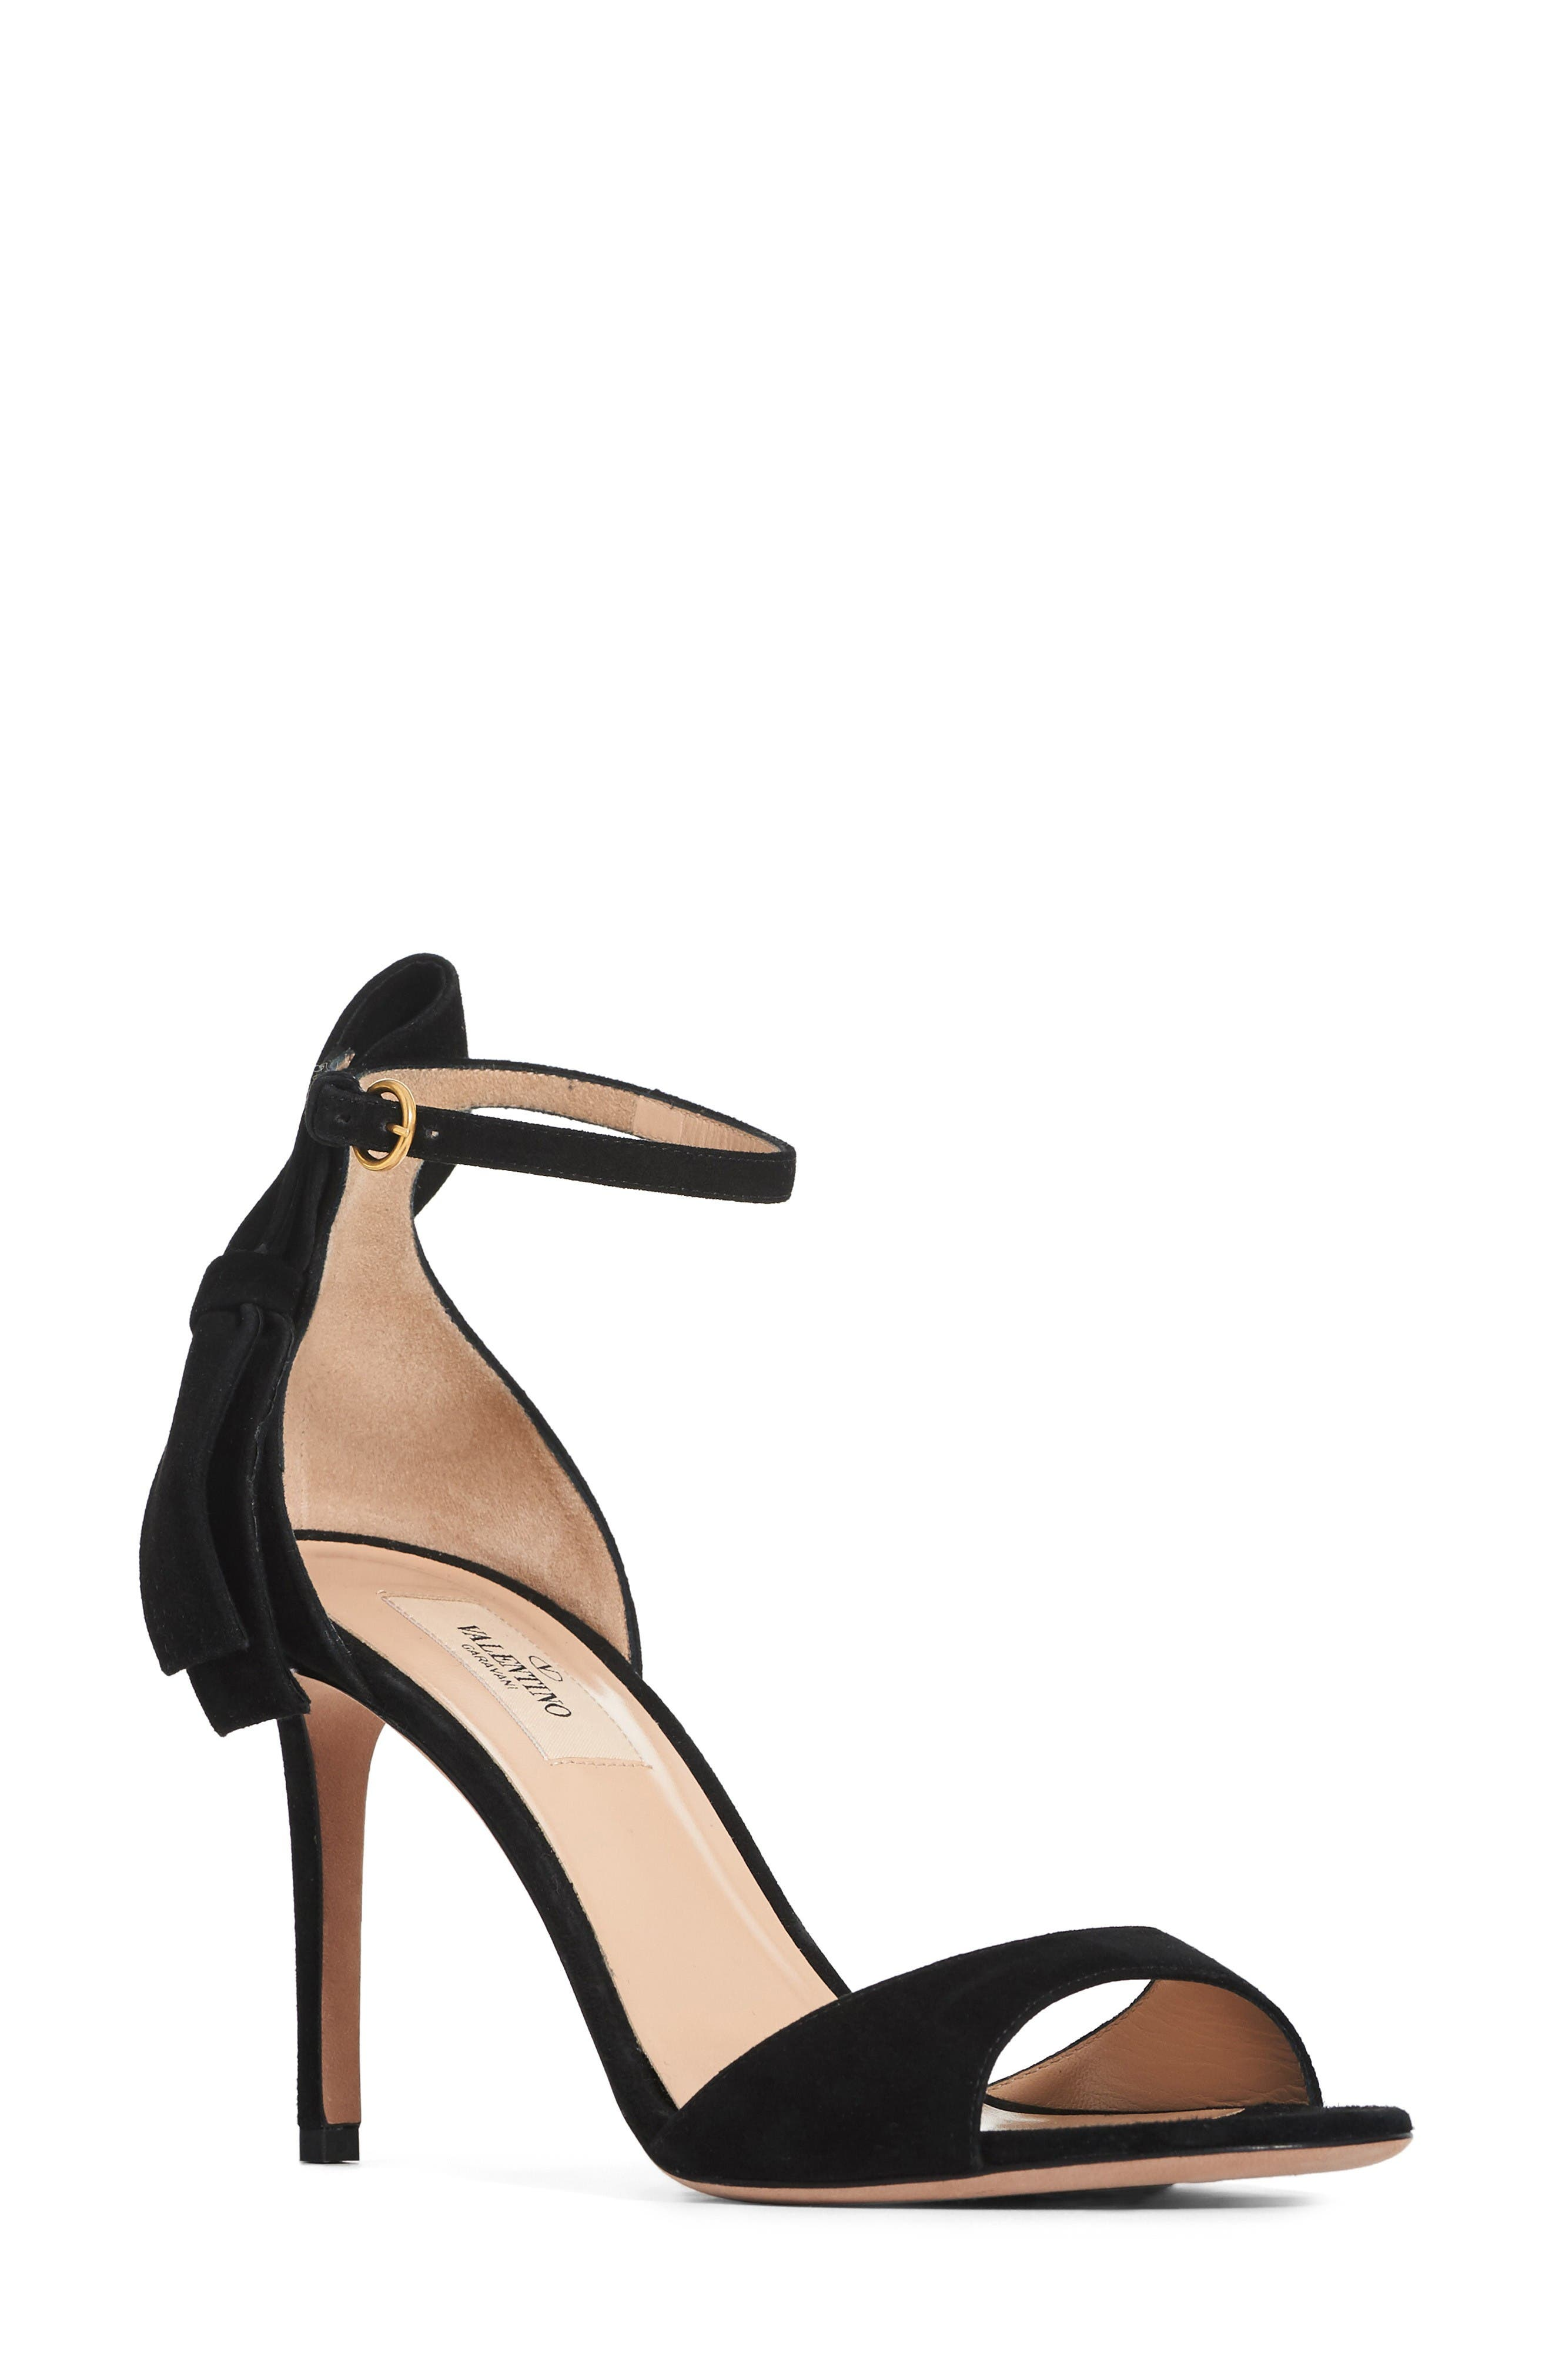 Alternate Image 1 Selected - VALENTINO GARAVANI Bow Heel Sandal (Women)